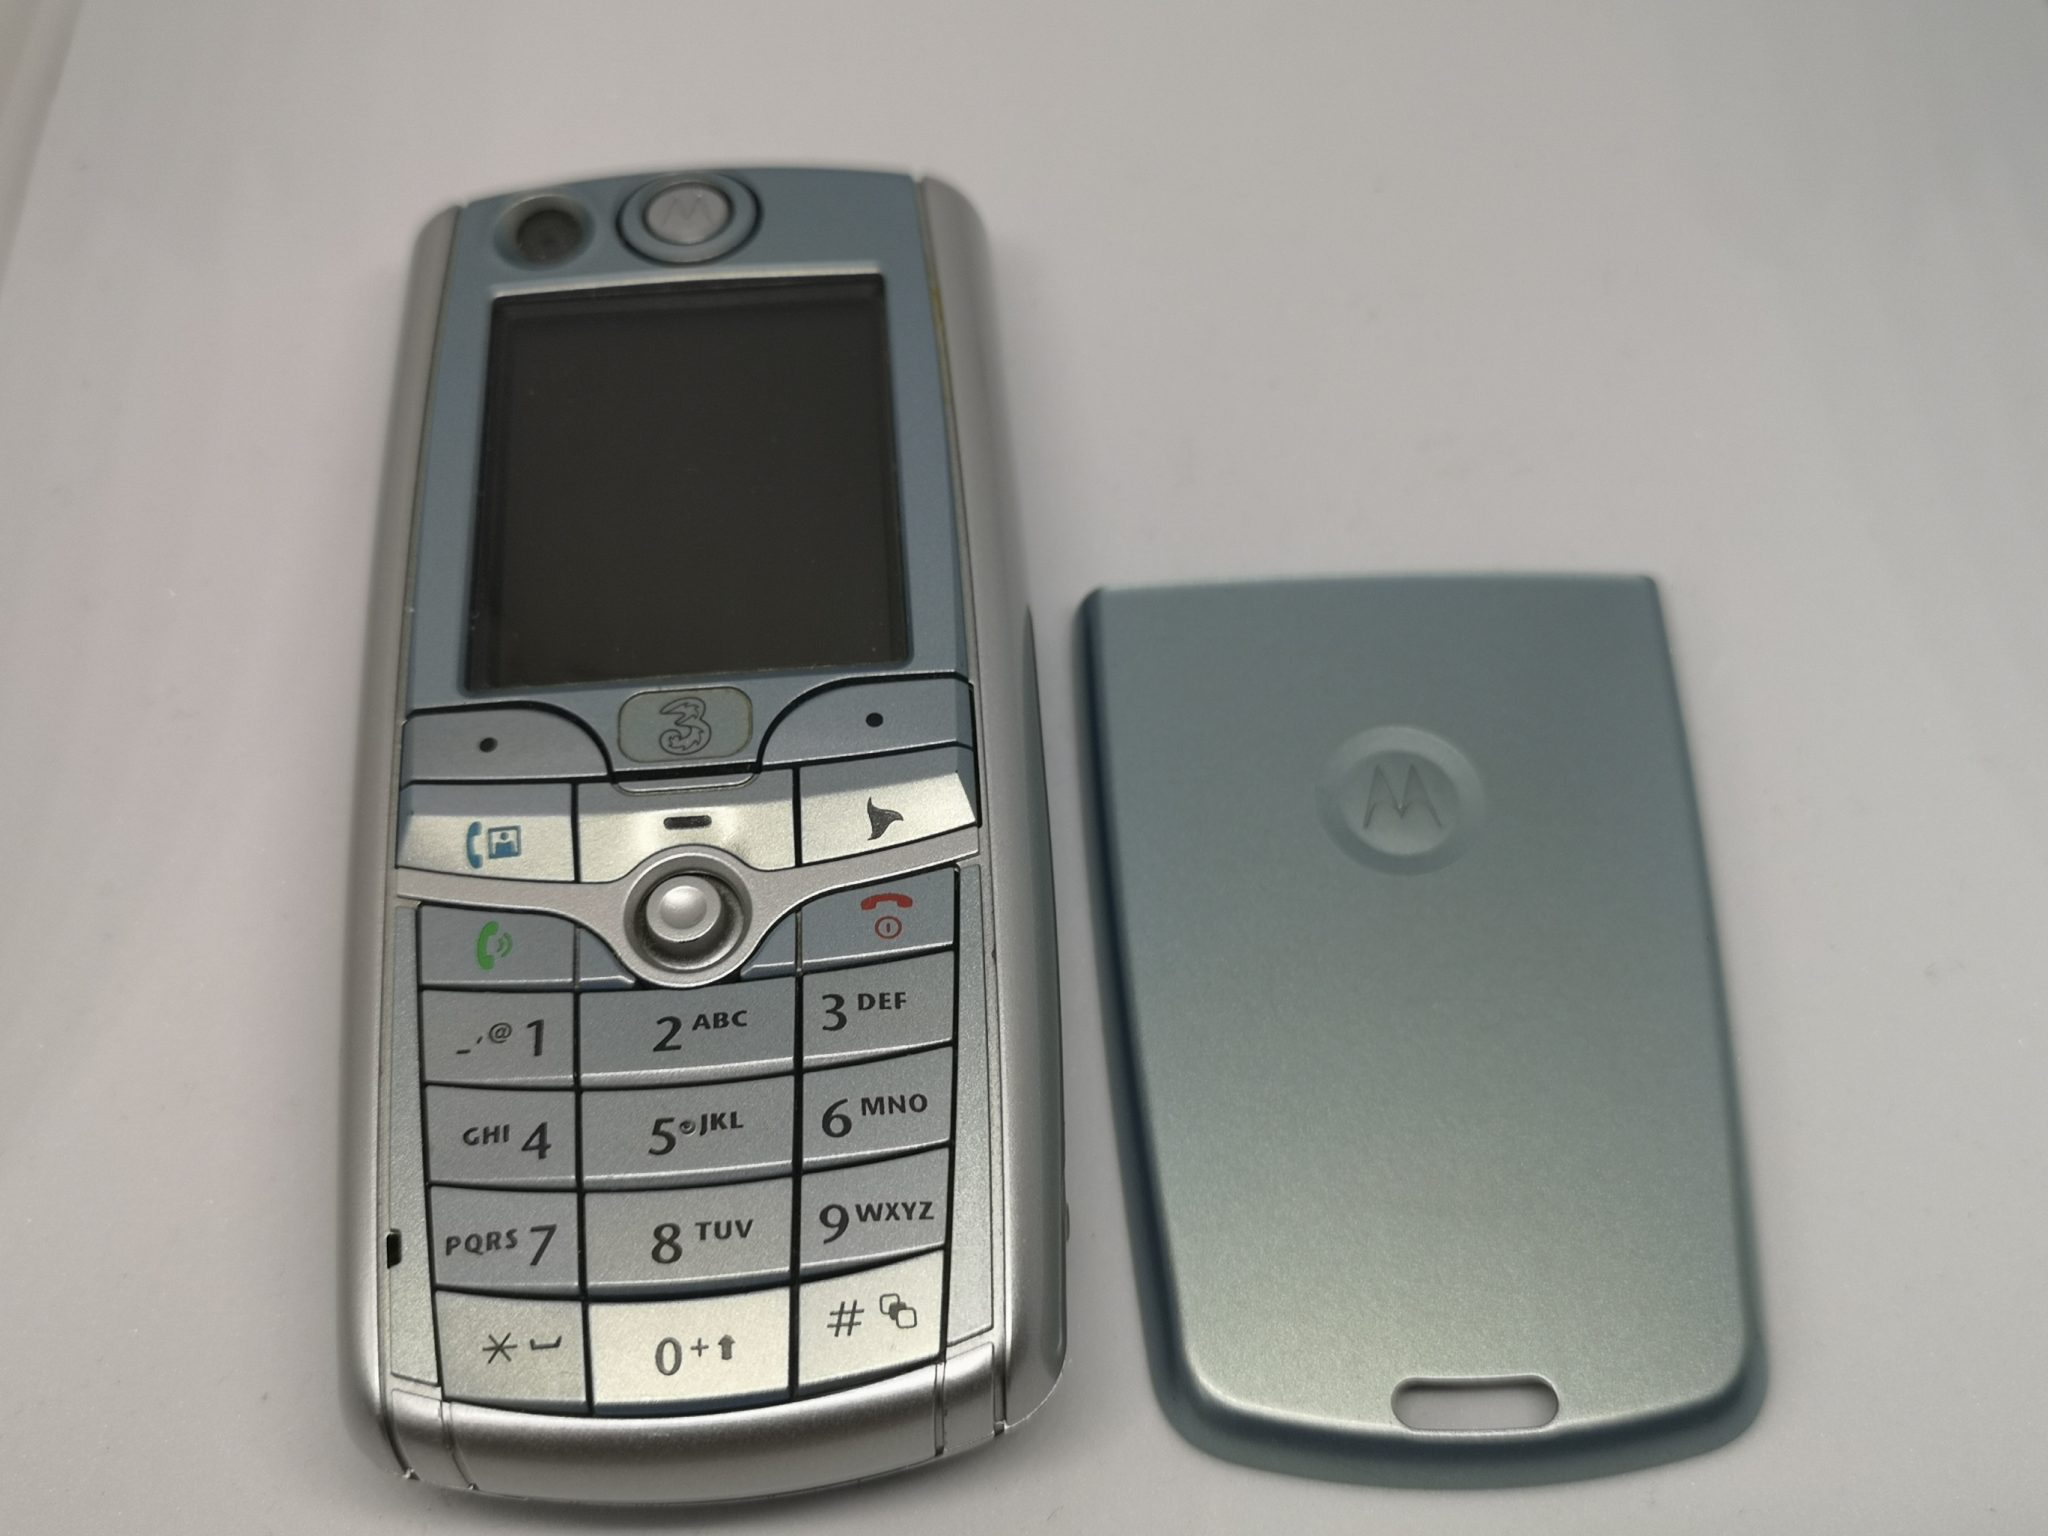 Motorola C975 Review - Functional Mobile Phone in Plus Size